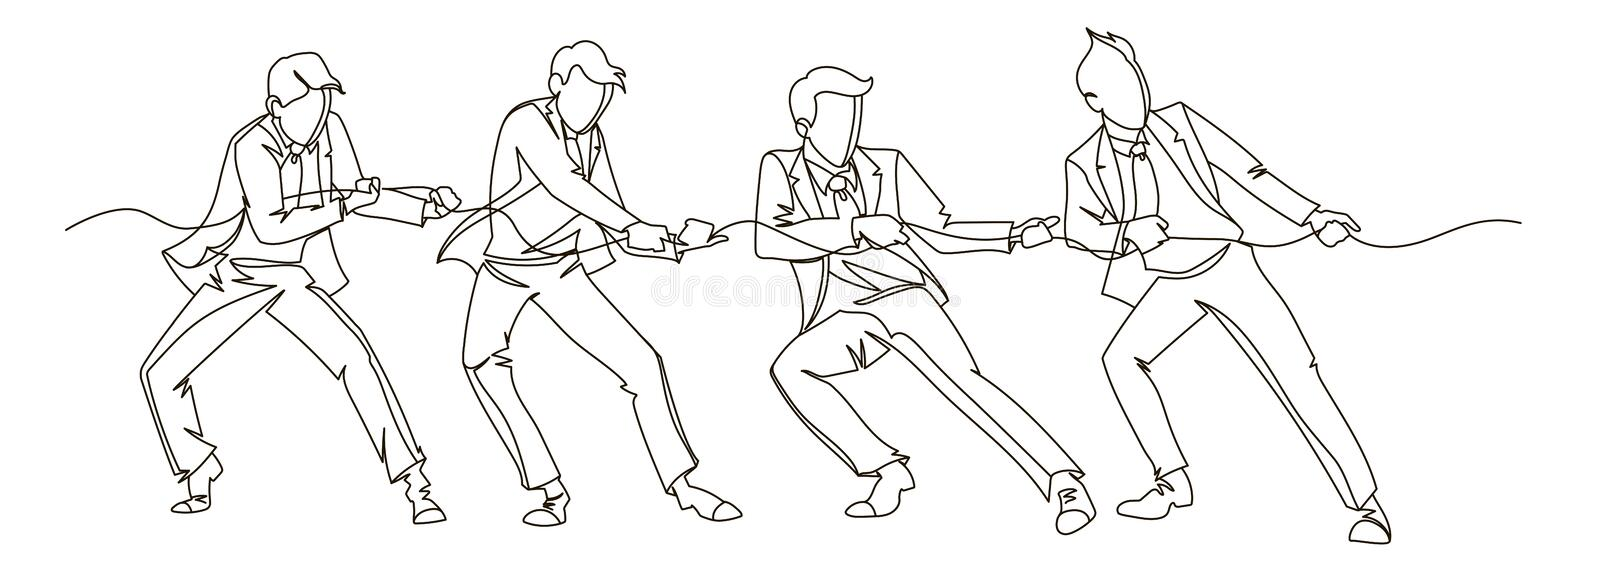 Businessman Pulling the Rope Continuous Line Art. Business Teamwork Linear Concept. Silhouette People Competition stock illustration